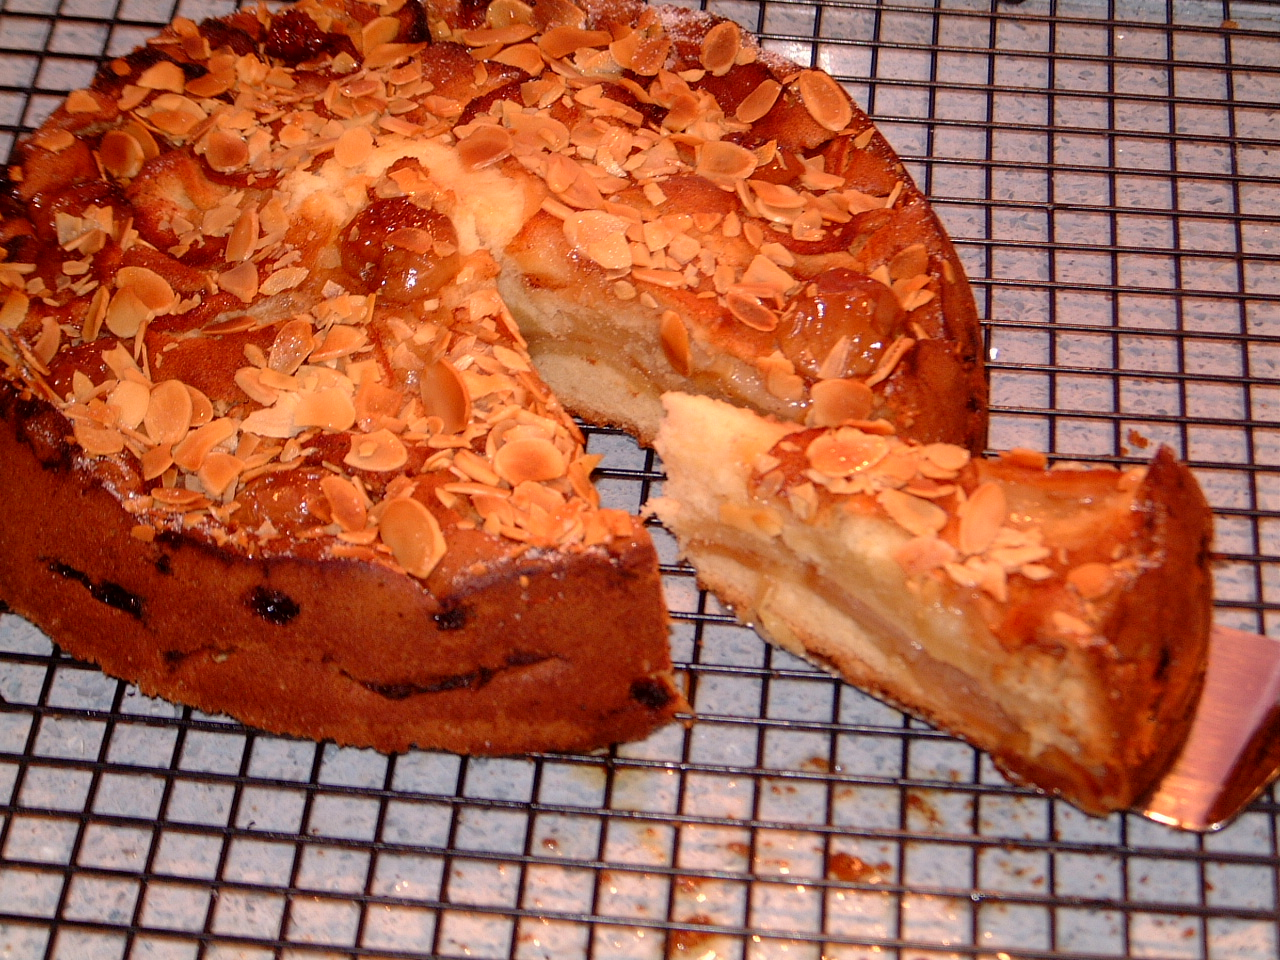 A slice of Apple and Almond cake